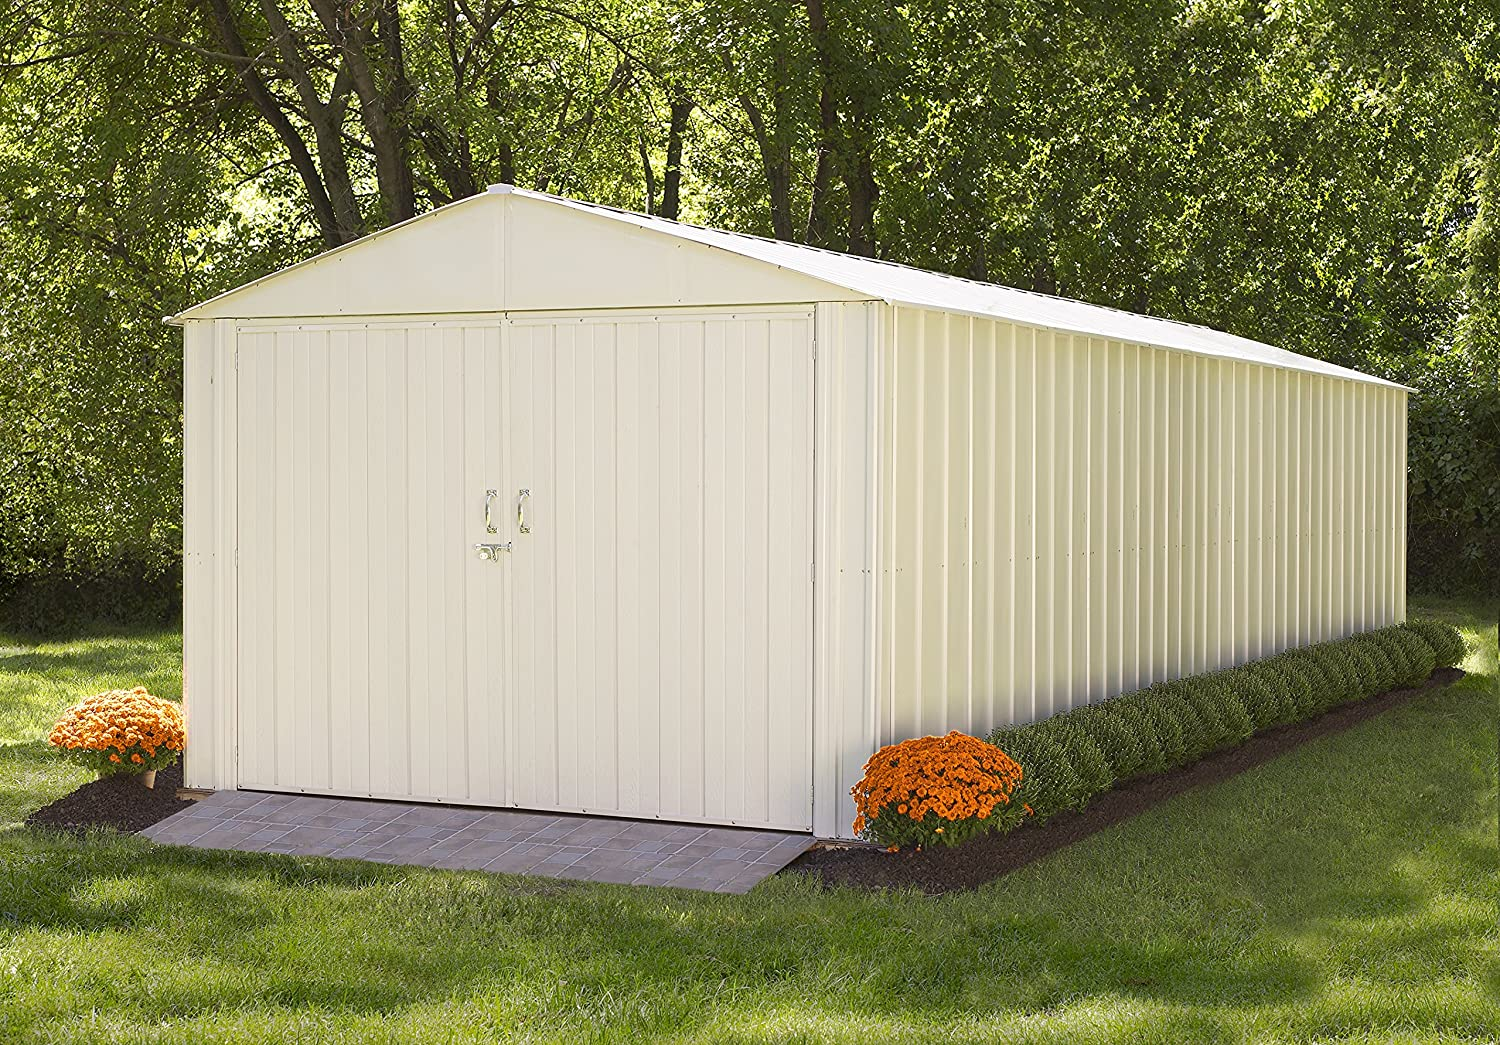 amazoncom steel storage shed 10 x 25 ft high gable galvanized eggshell sheds outdoor storage garden outdoor